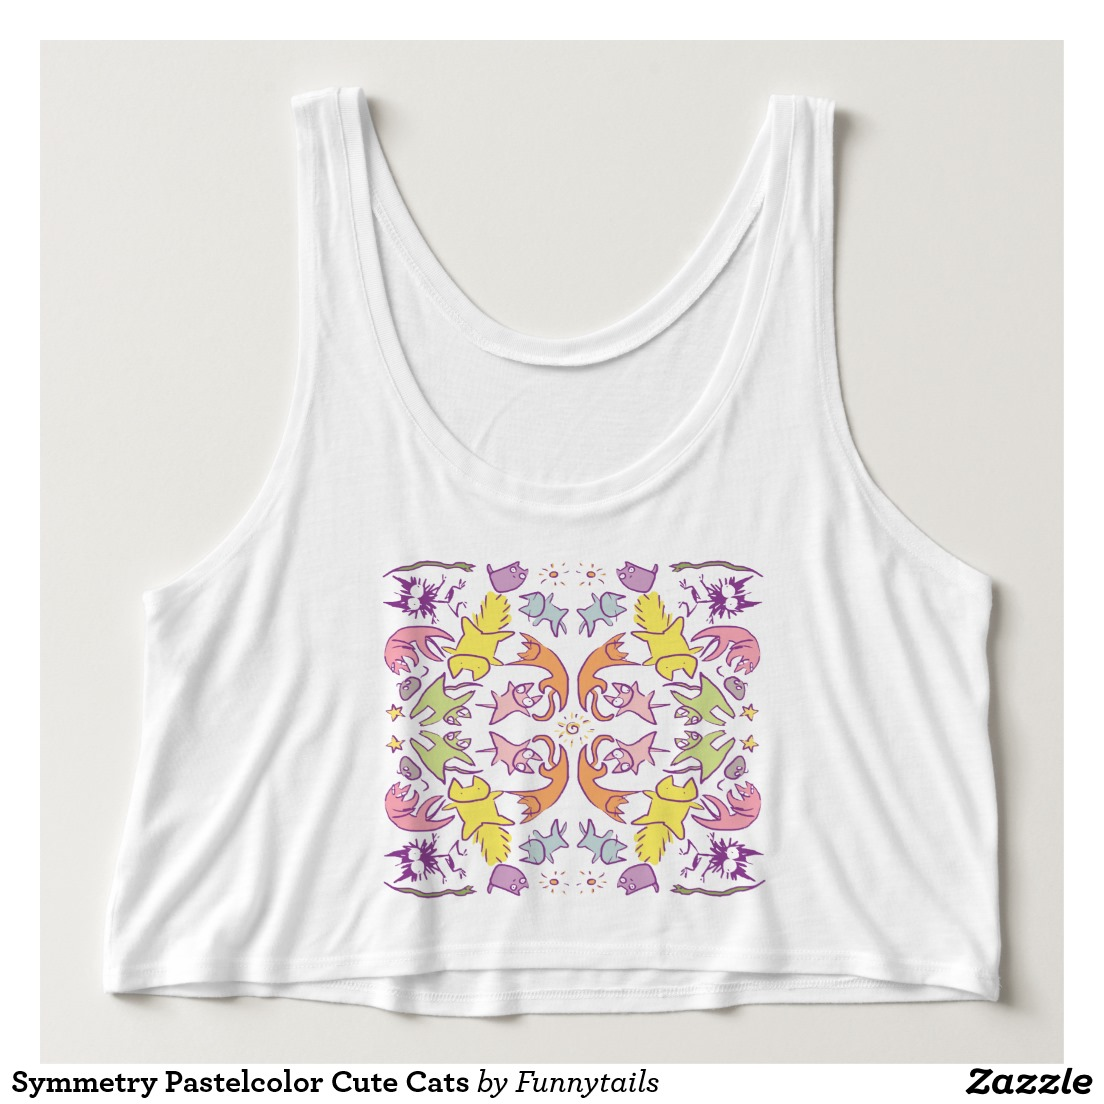 symmetry-pastelcolor-cute-cats-tank-top4